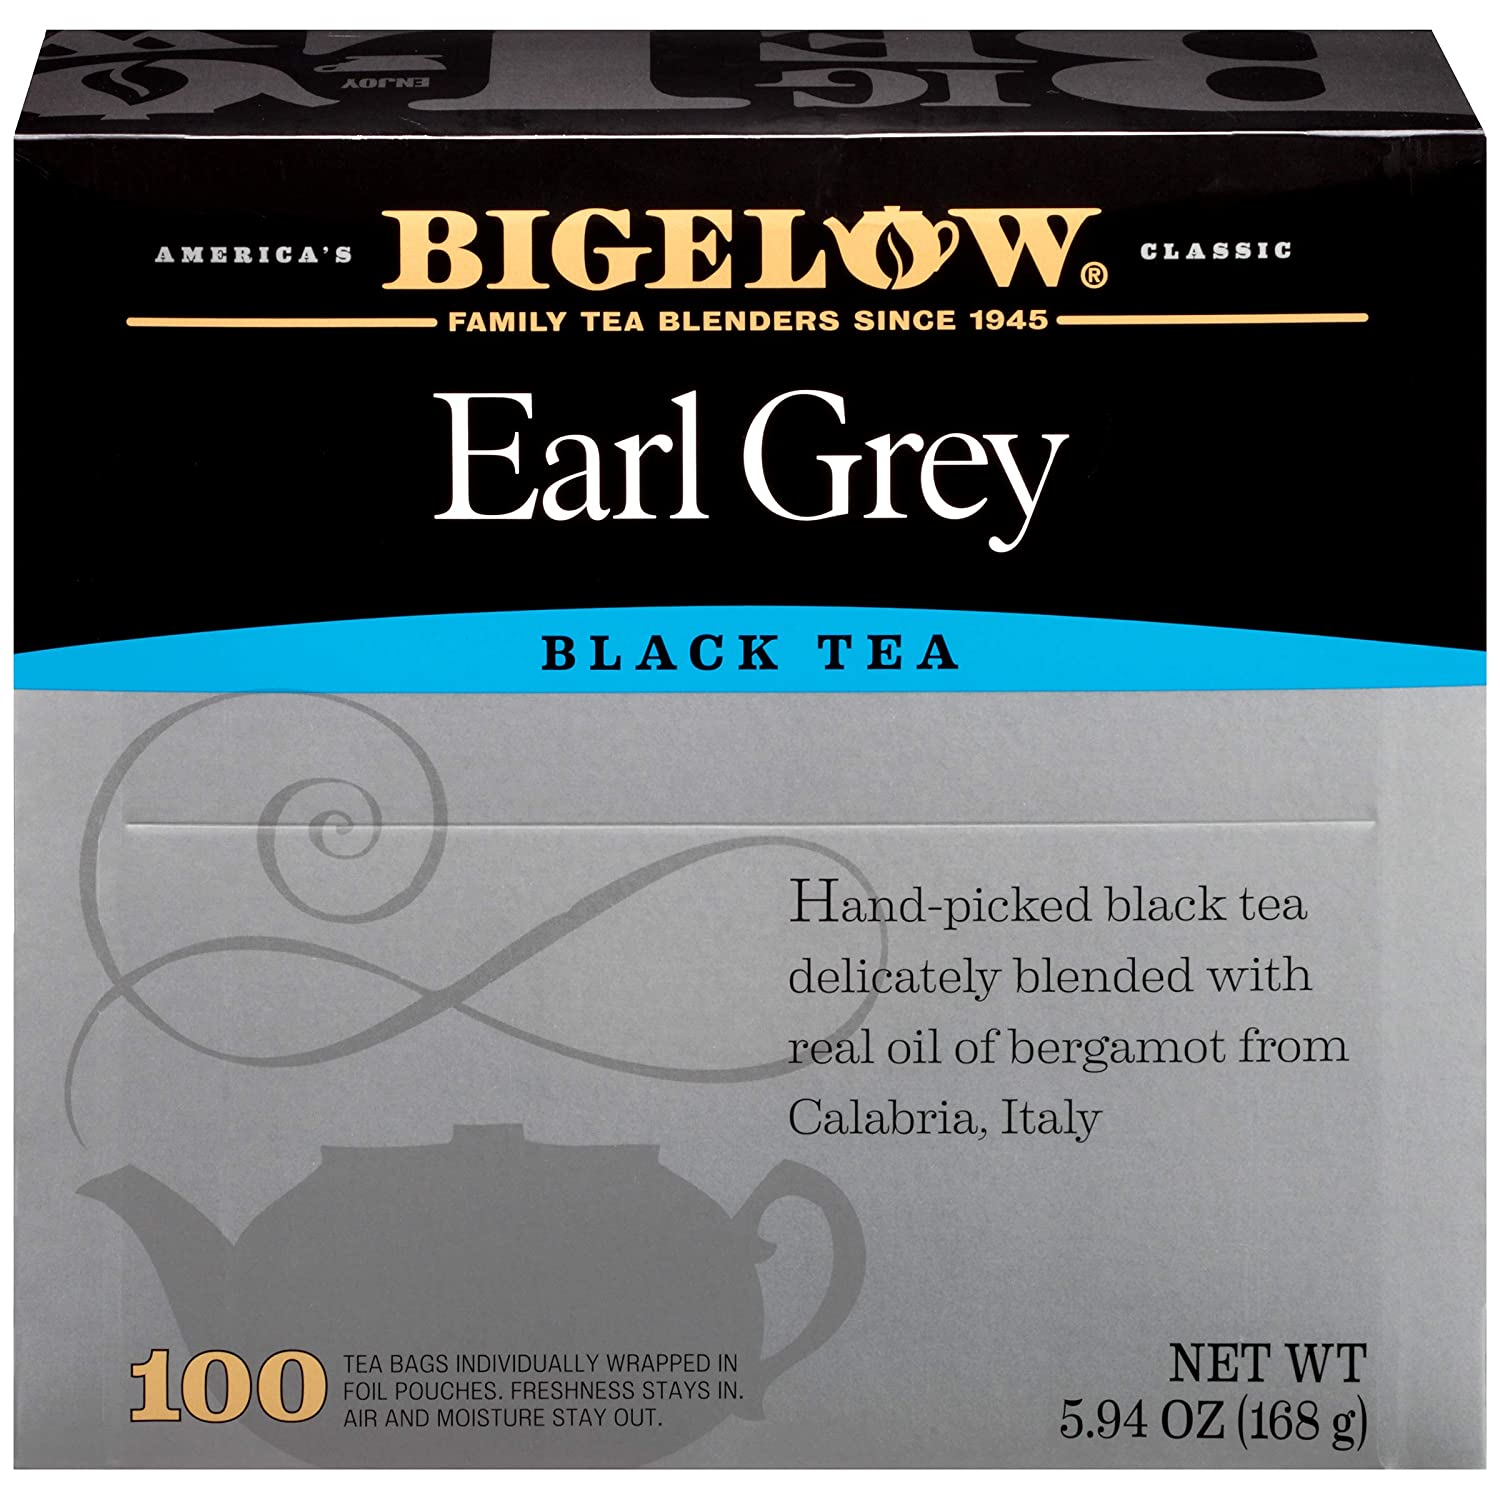 Bigelow Earl Grey Black Tea - 100 Tea Bags